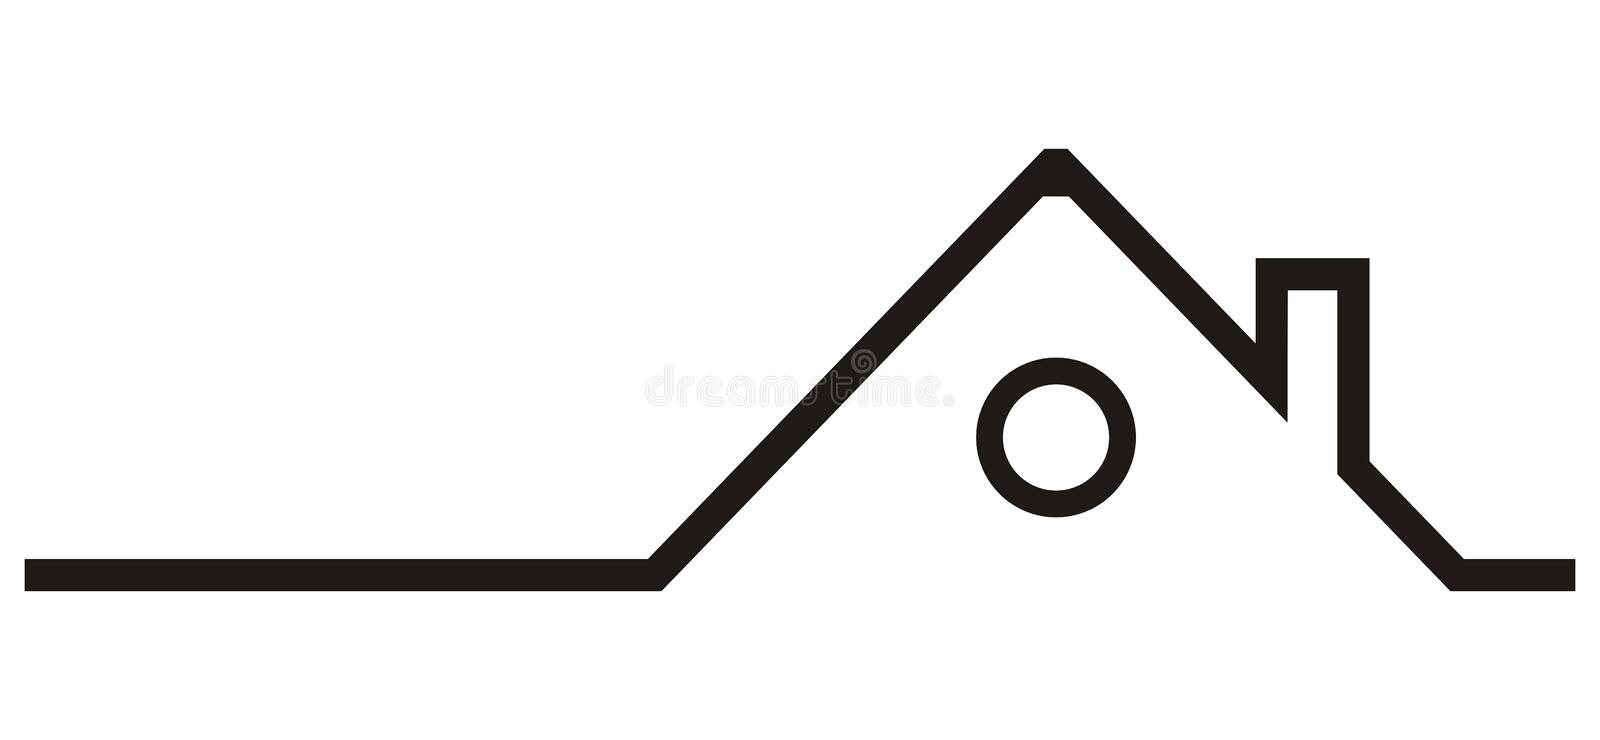 Silhouette of house, roof with smokestack, vector icon royalty free illustration